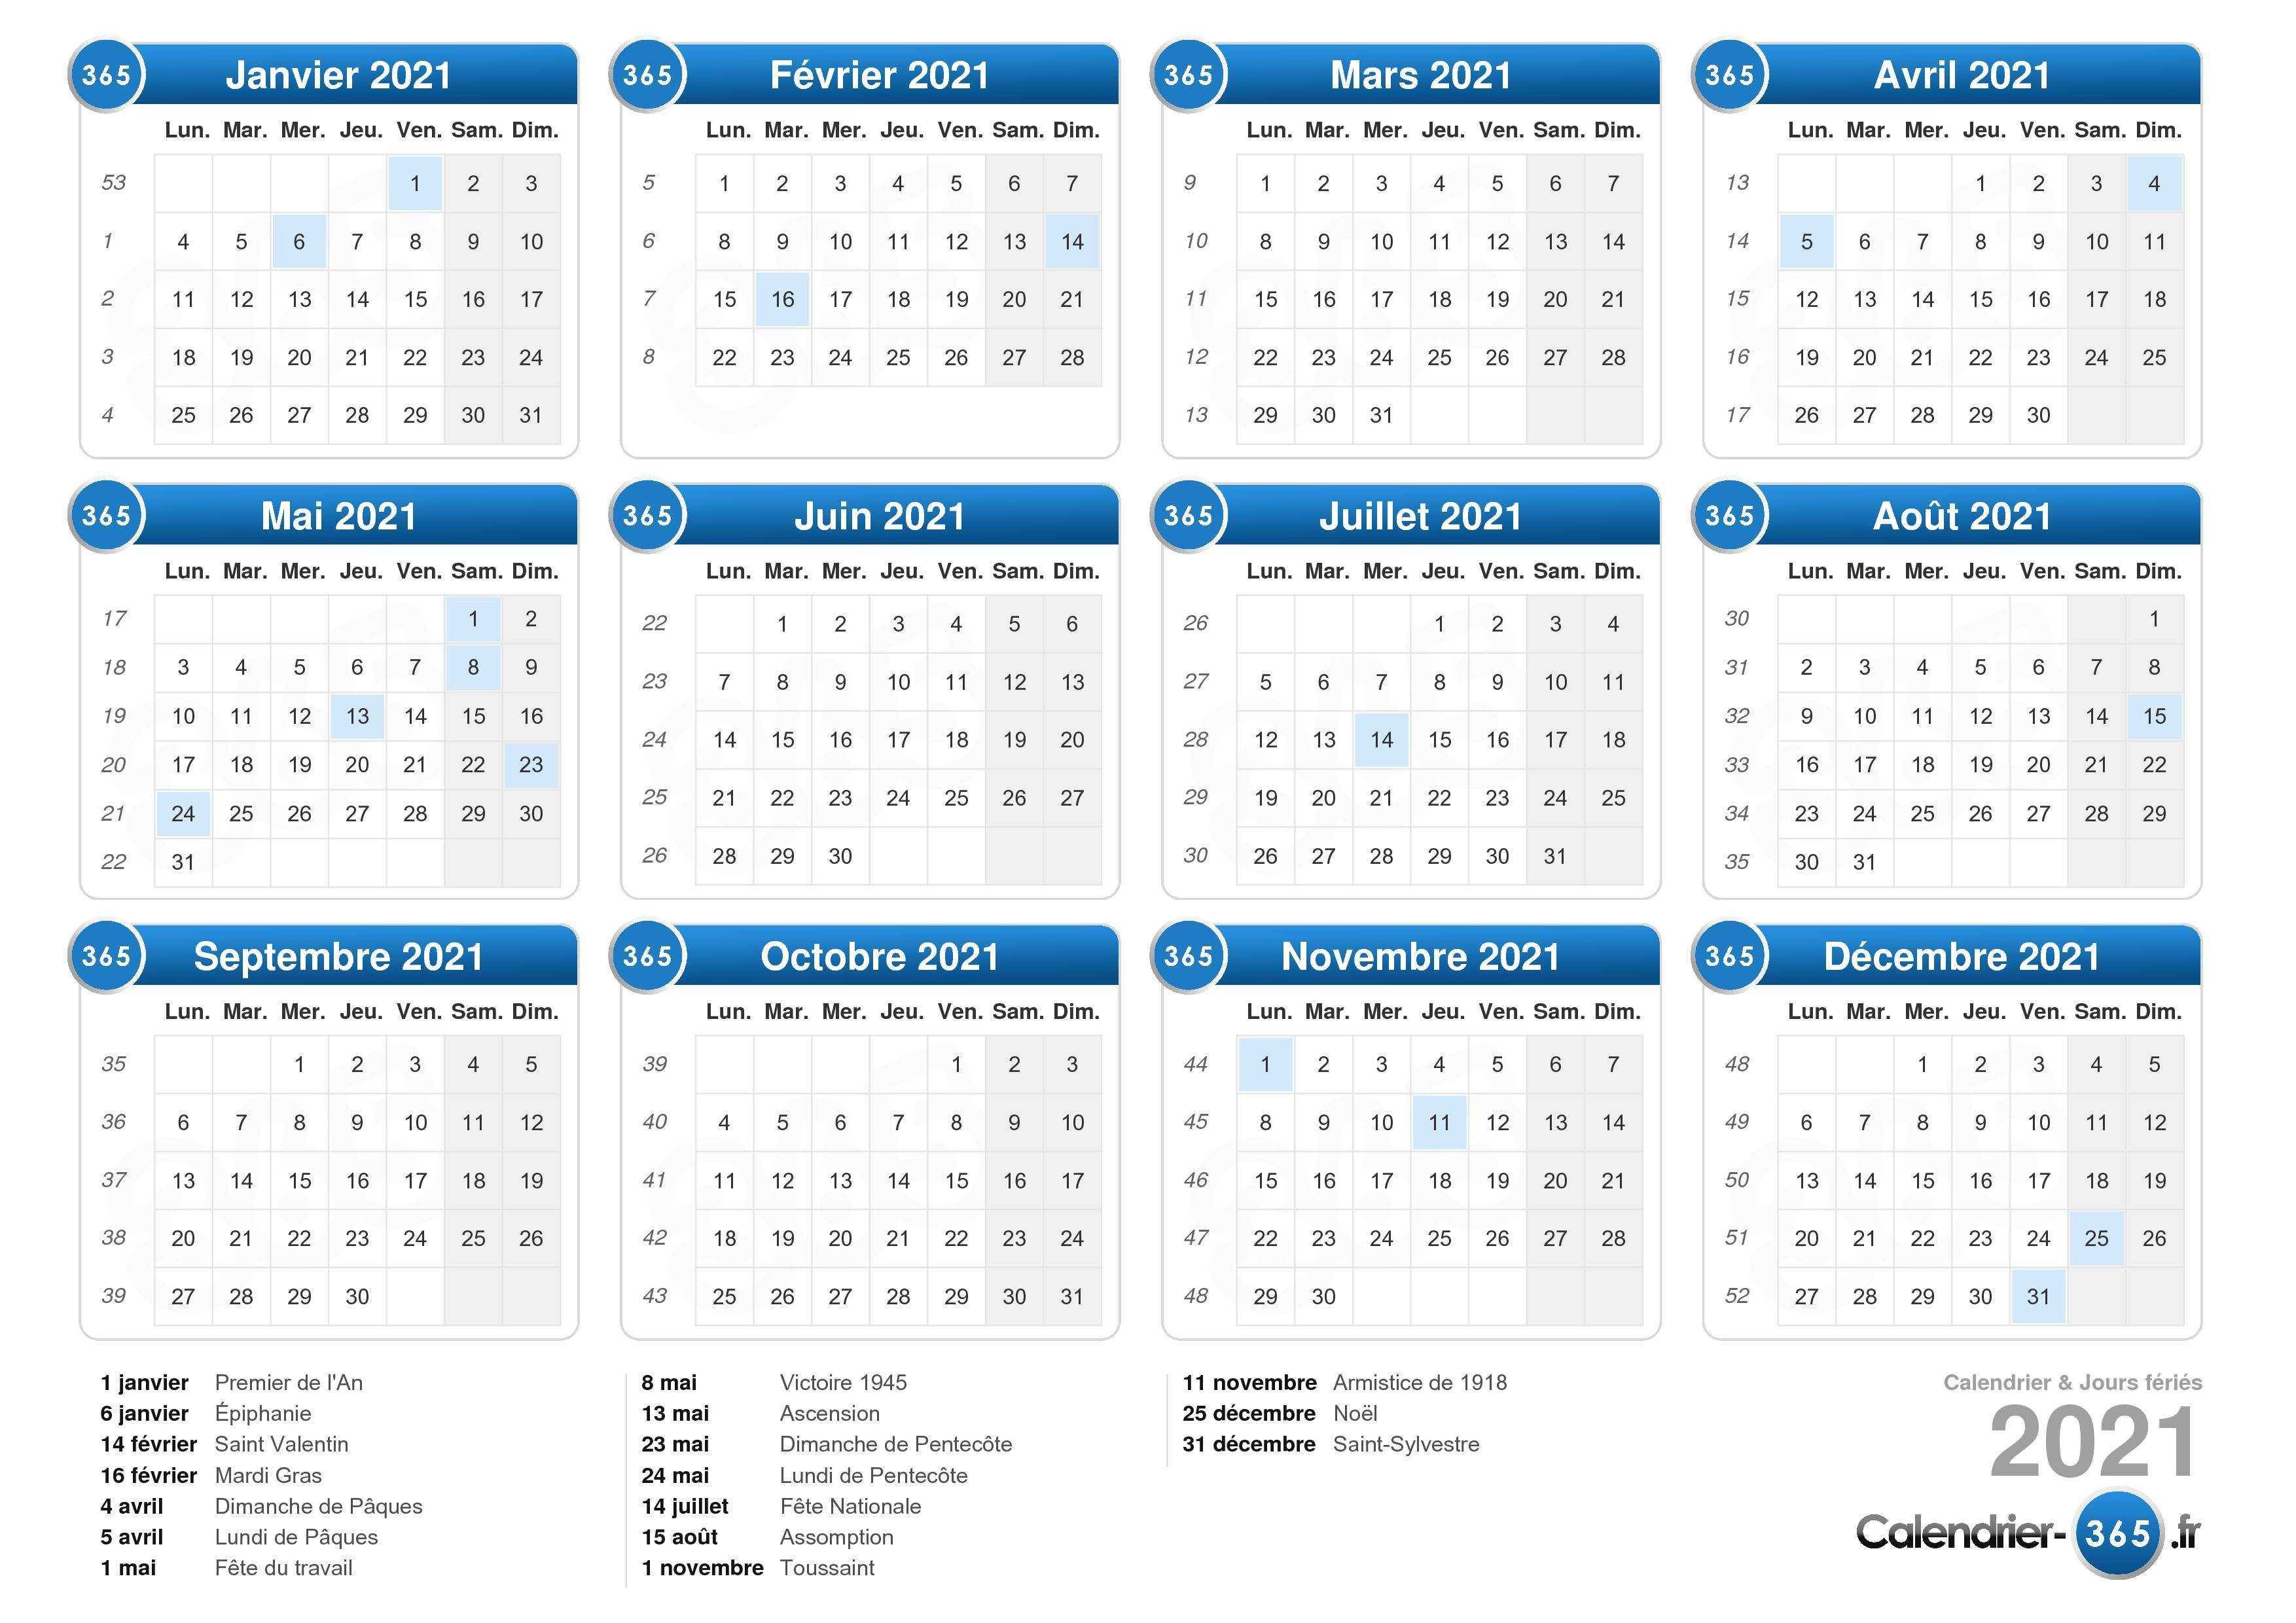 Calendrier 365 Jours 2021 Calendrier 2021